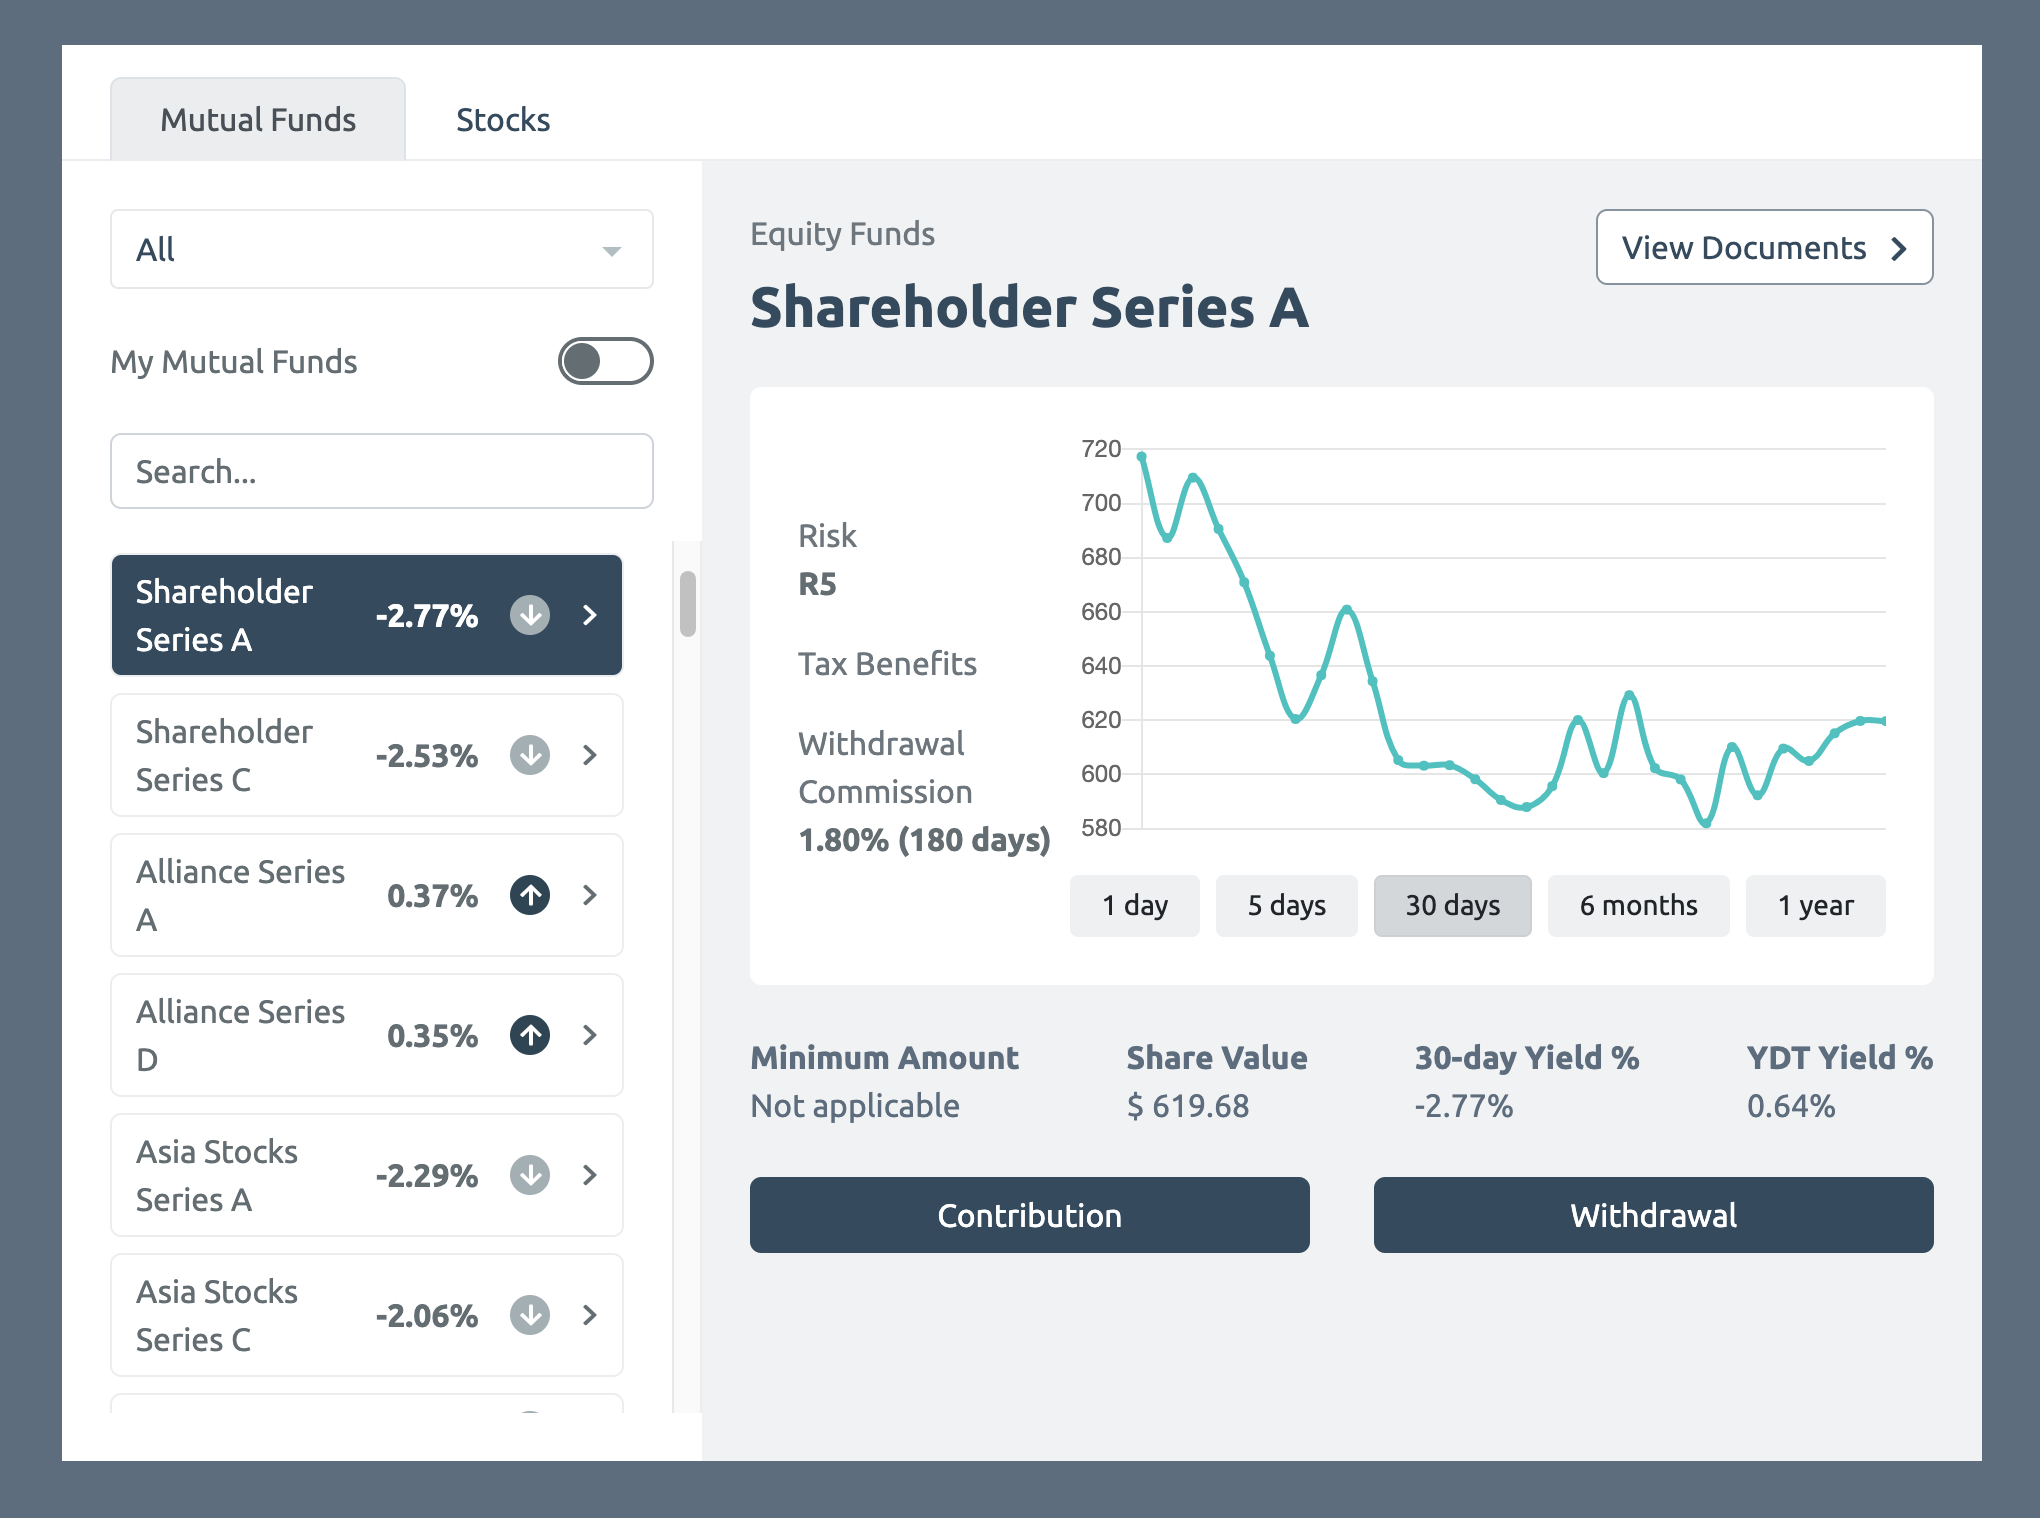 example of a widget displaying equity funds information over time